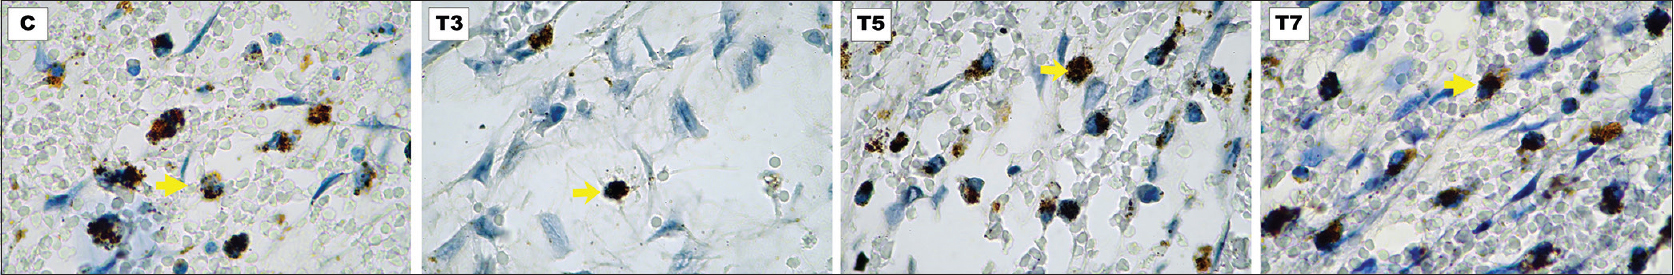 Figure 2: The immunohistochemistry staining of MAC387 expression (×1000) for C, T3, T5, and T7 groups. Yellow arrows denote the stained macrophages